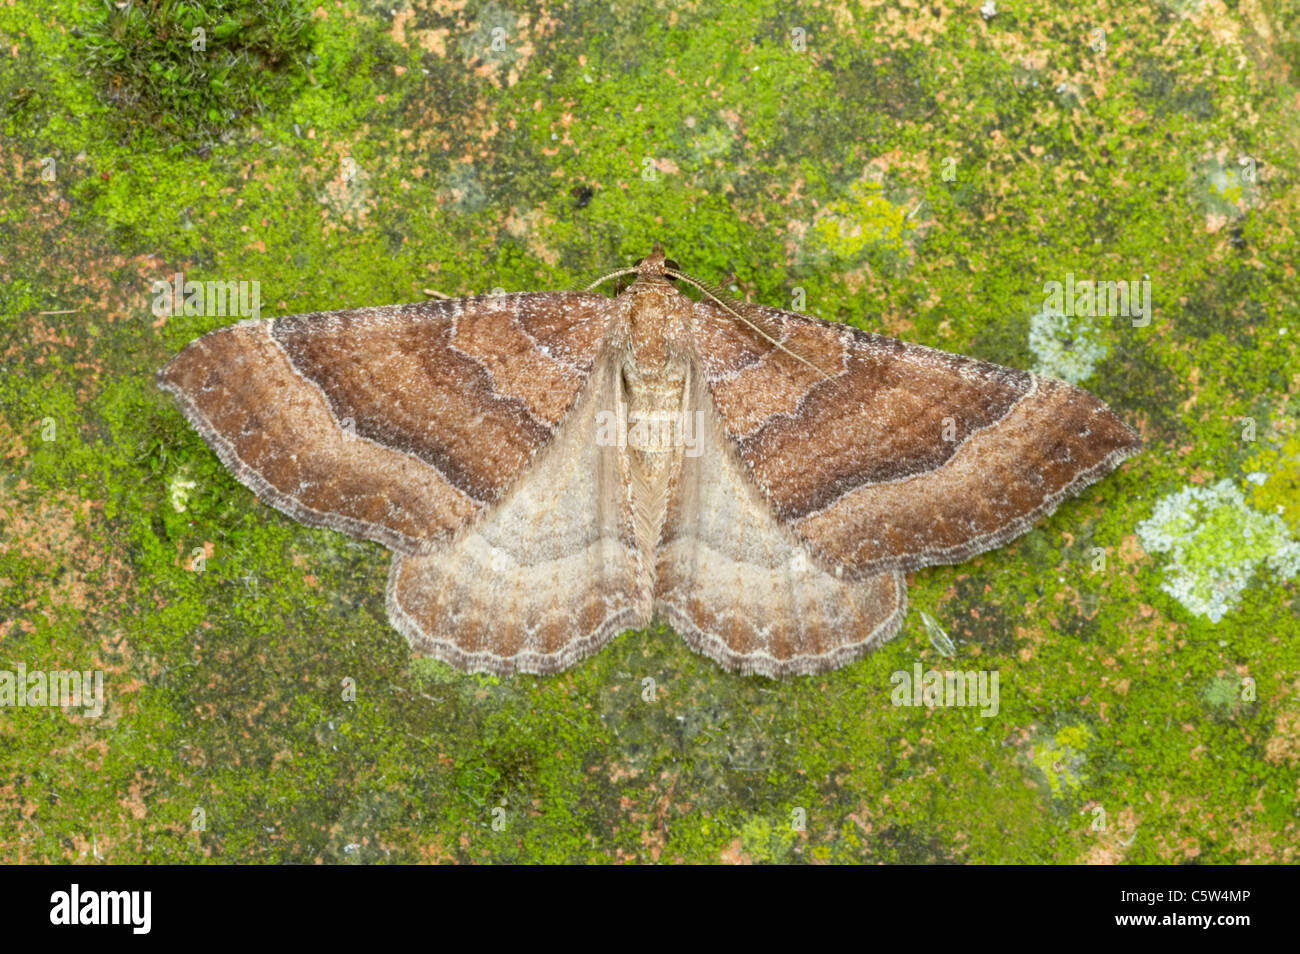 The Tissue Moth - Showing characteristic hind wing markings Triphosa dubitata Essex, UK IN000597 Stock Photo